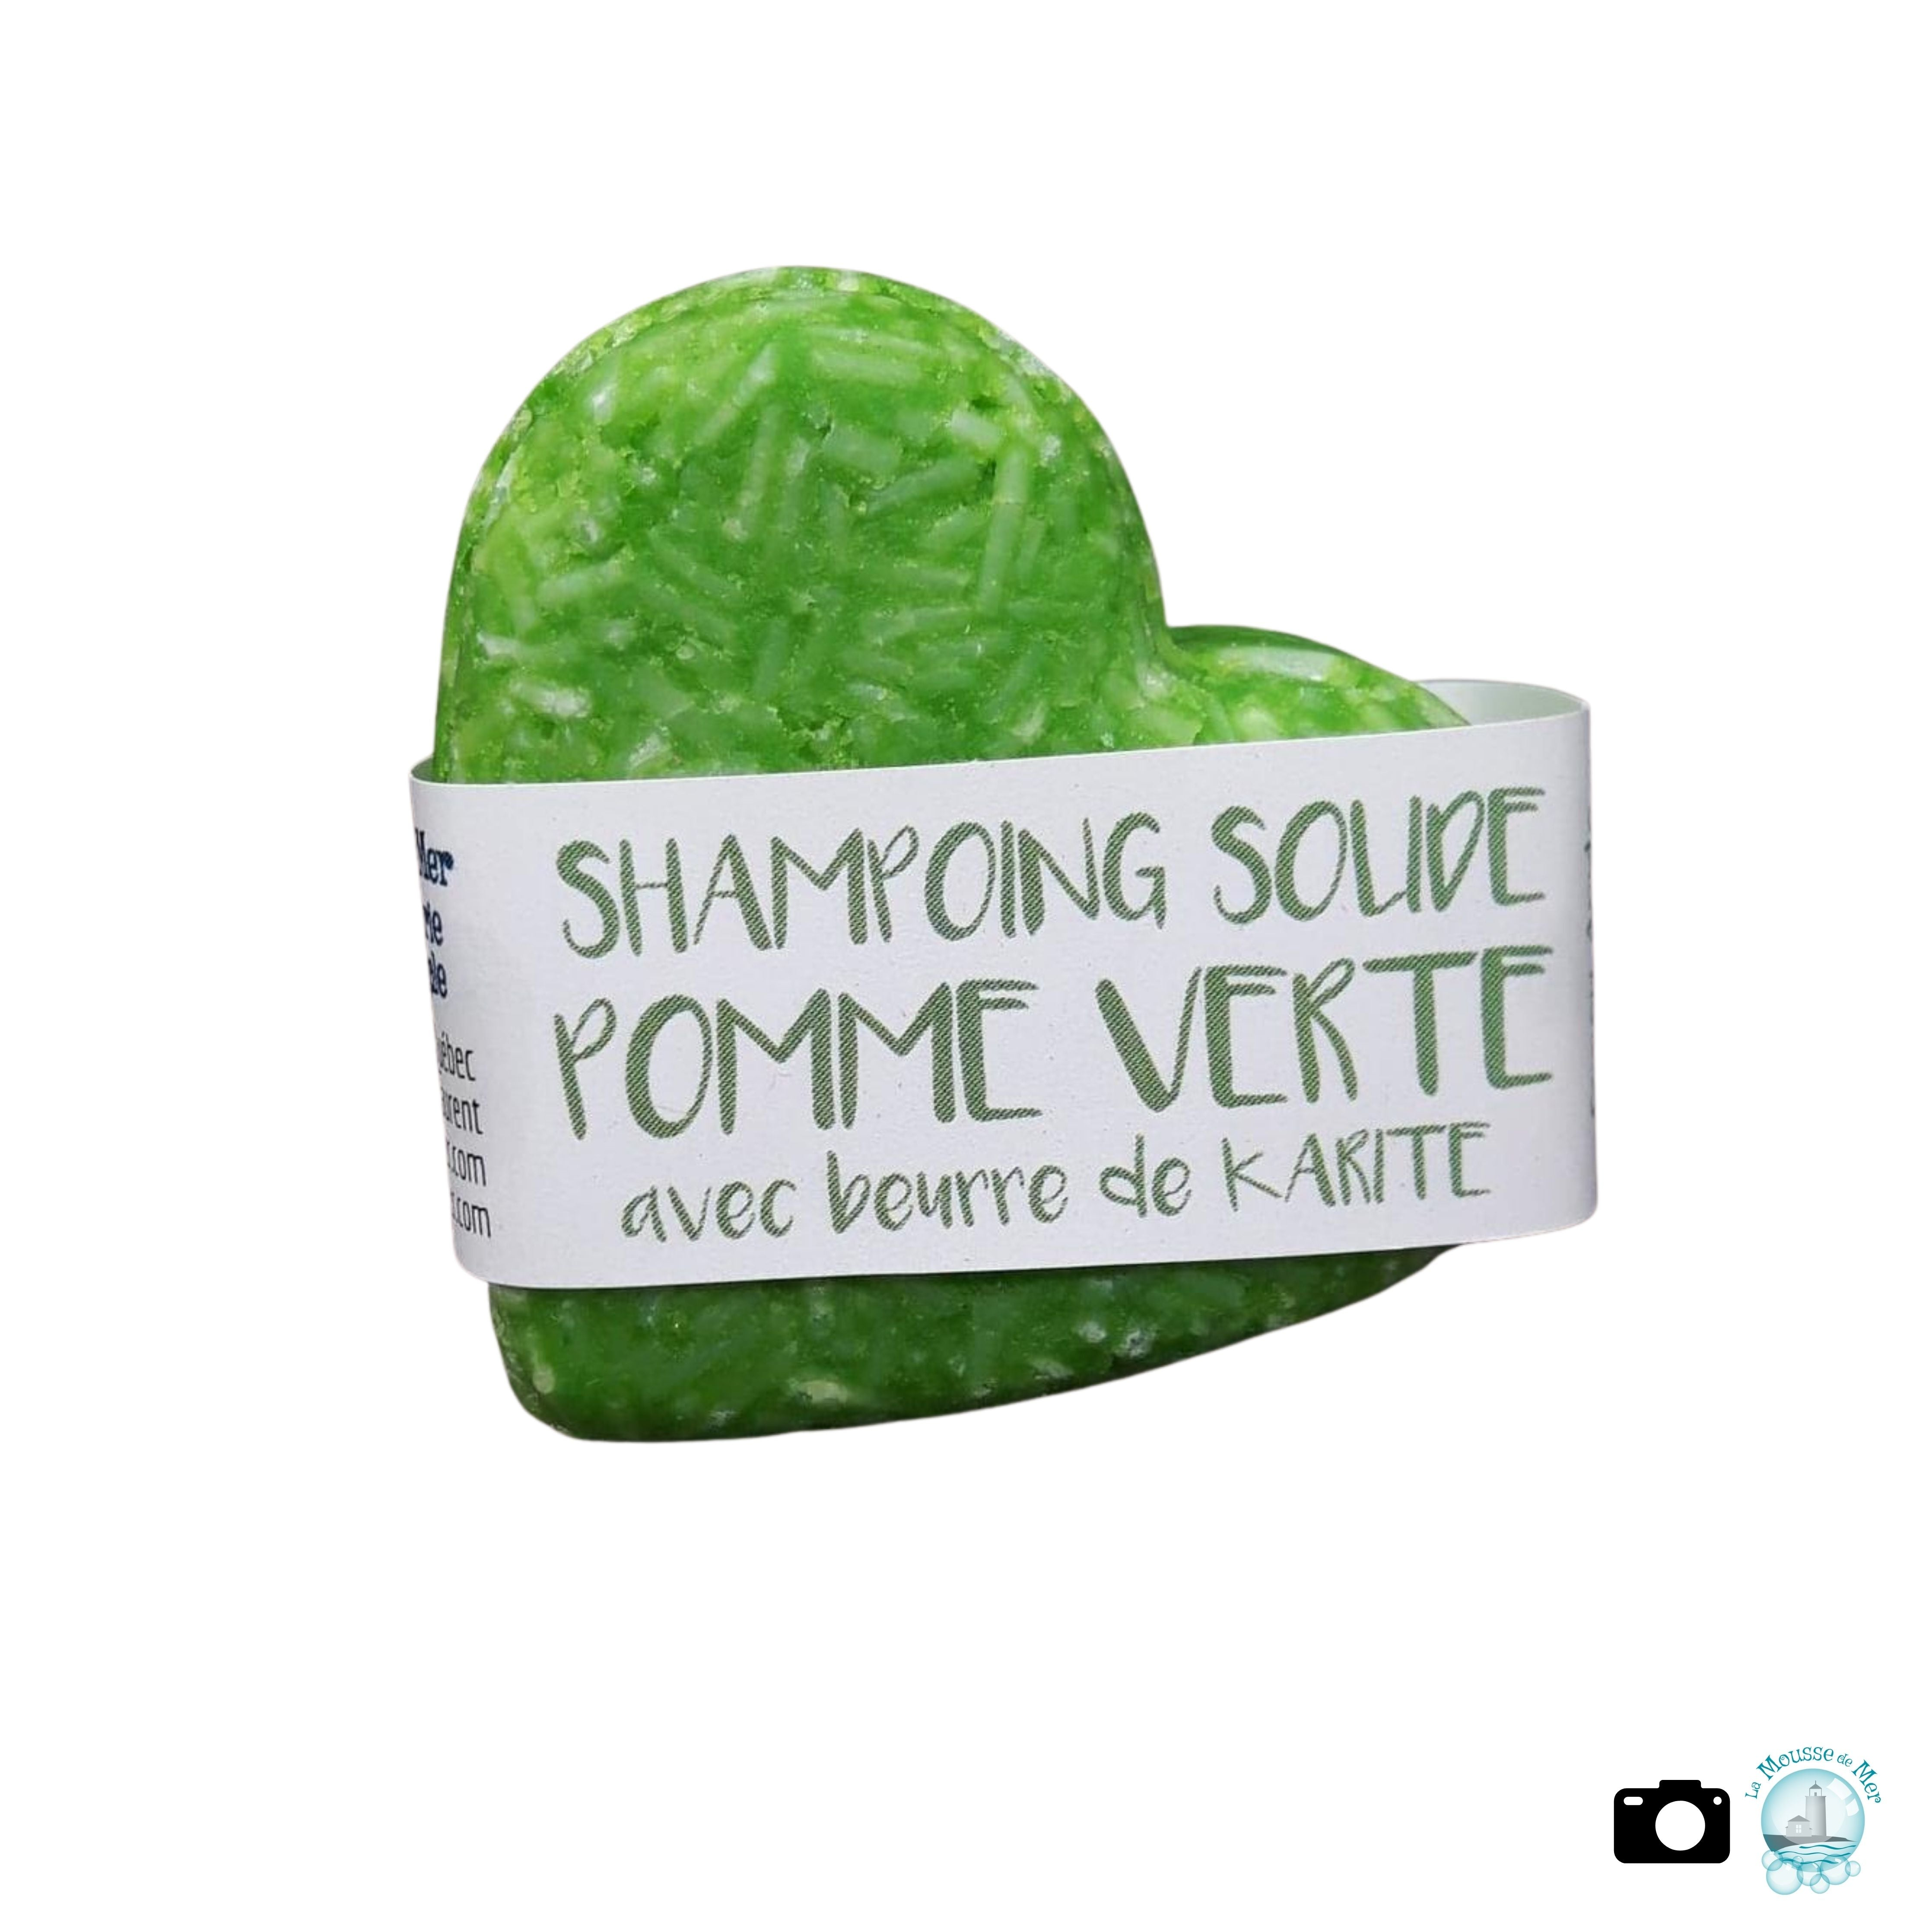 Pomme Verte - Shampoing solide parfumé